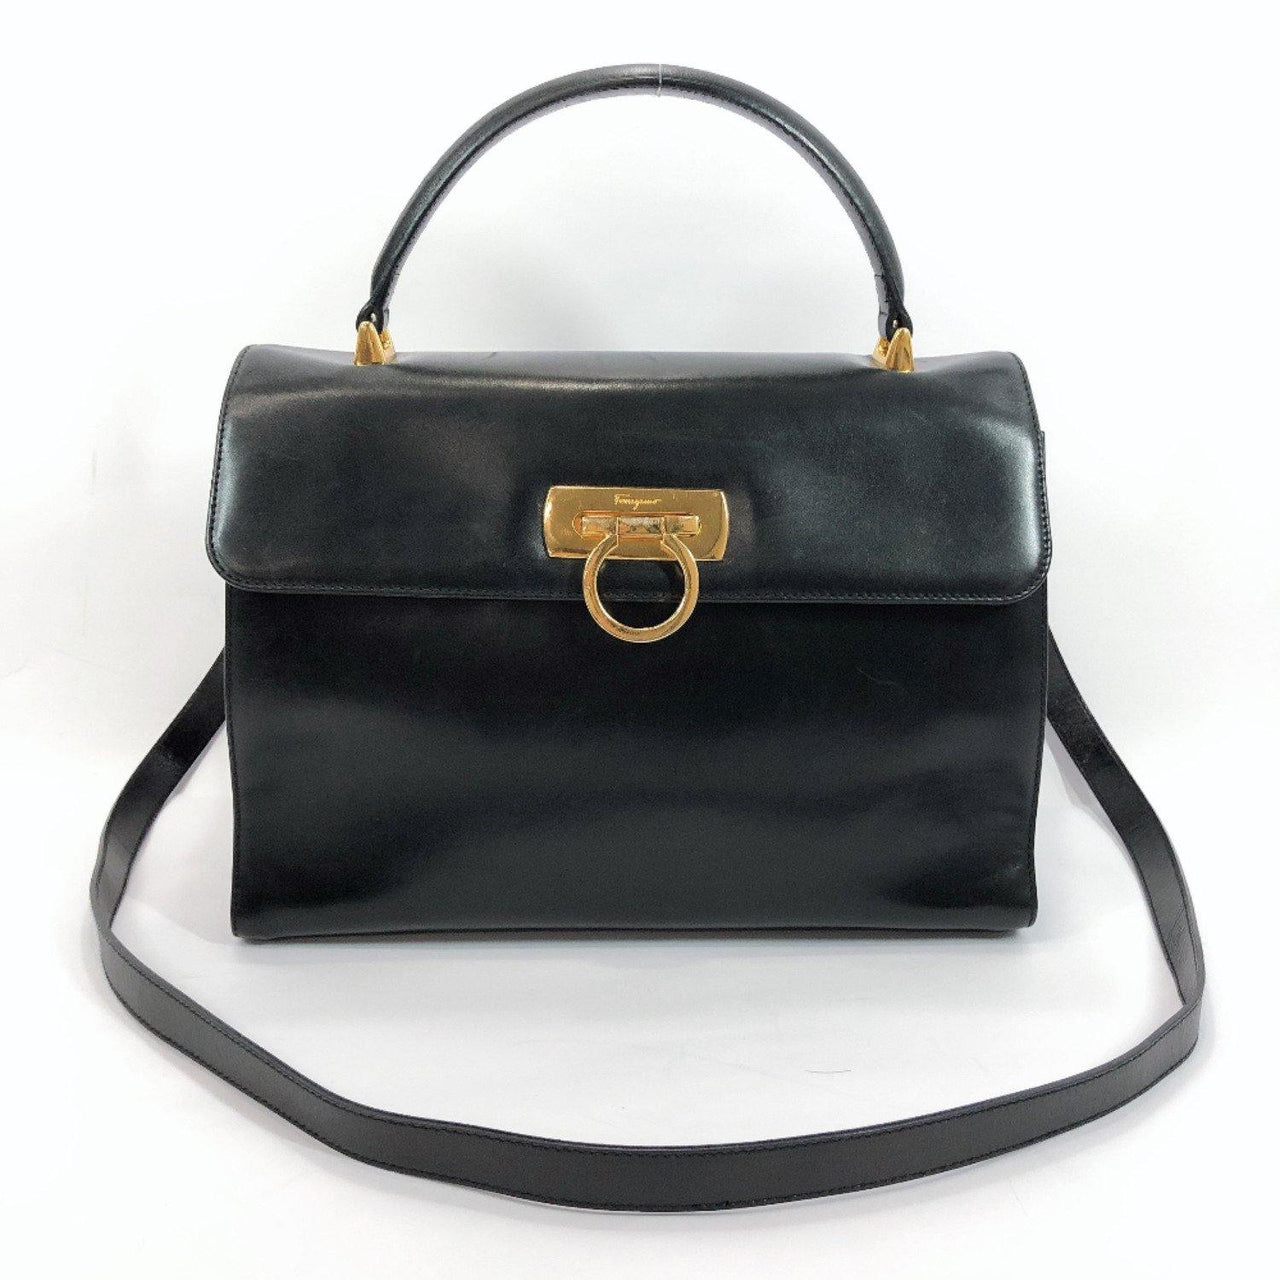 Salvatore Ferragamo Handbag Gancini leather black Women Used - JP-BRANDS.com